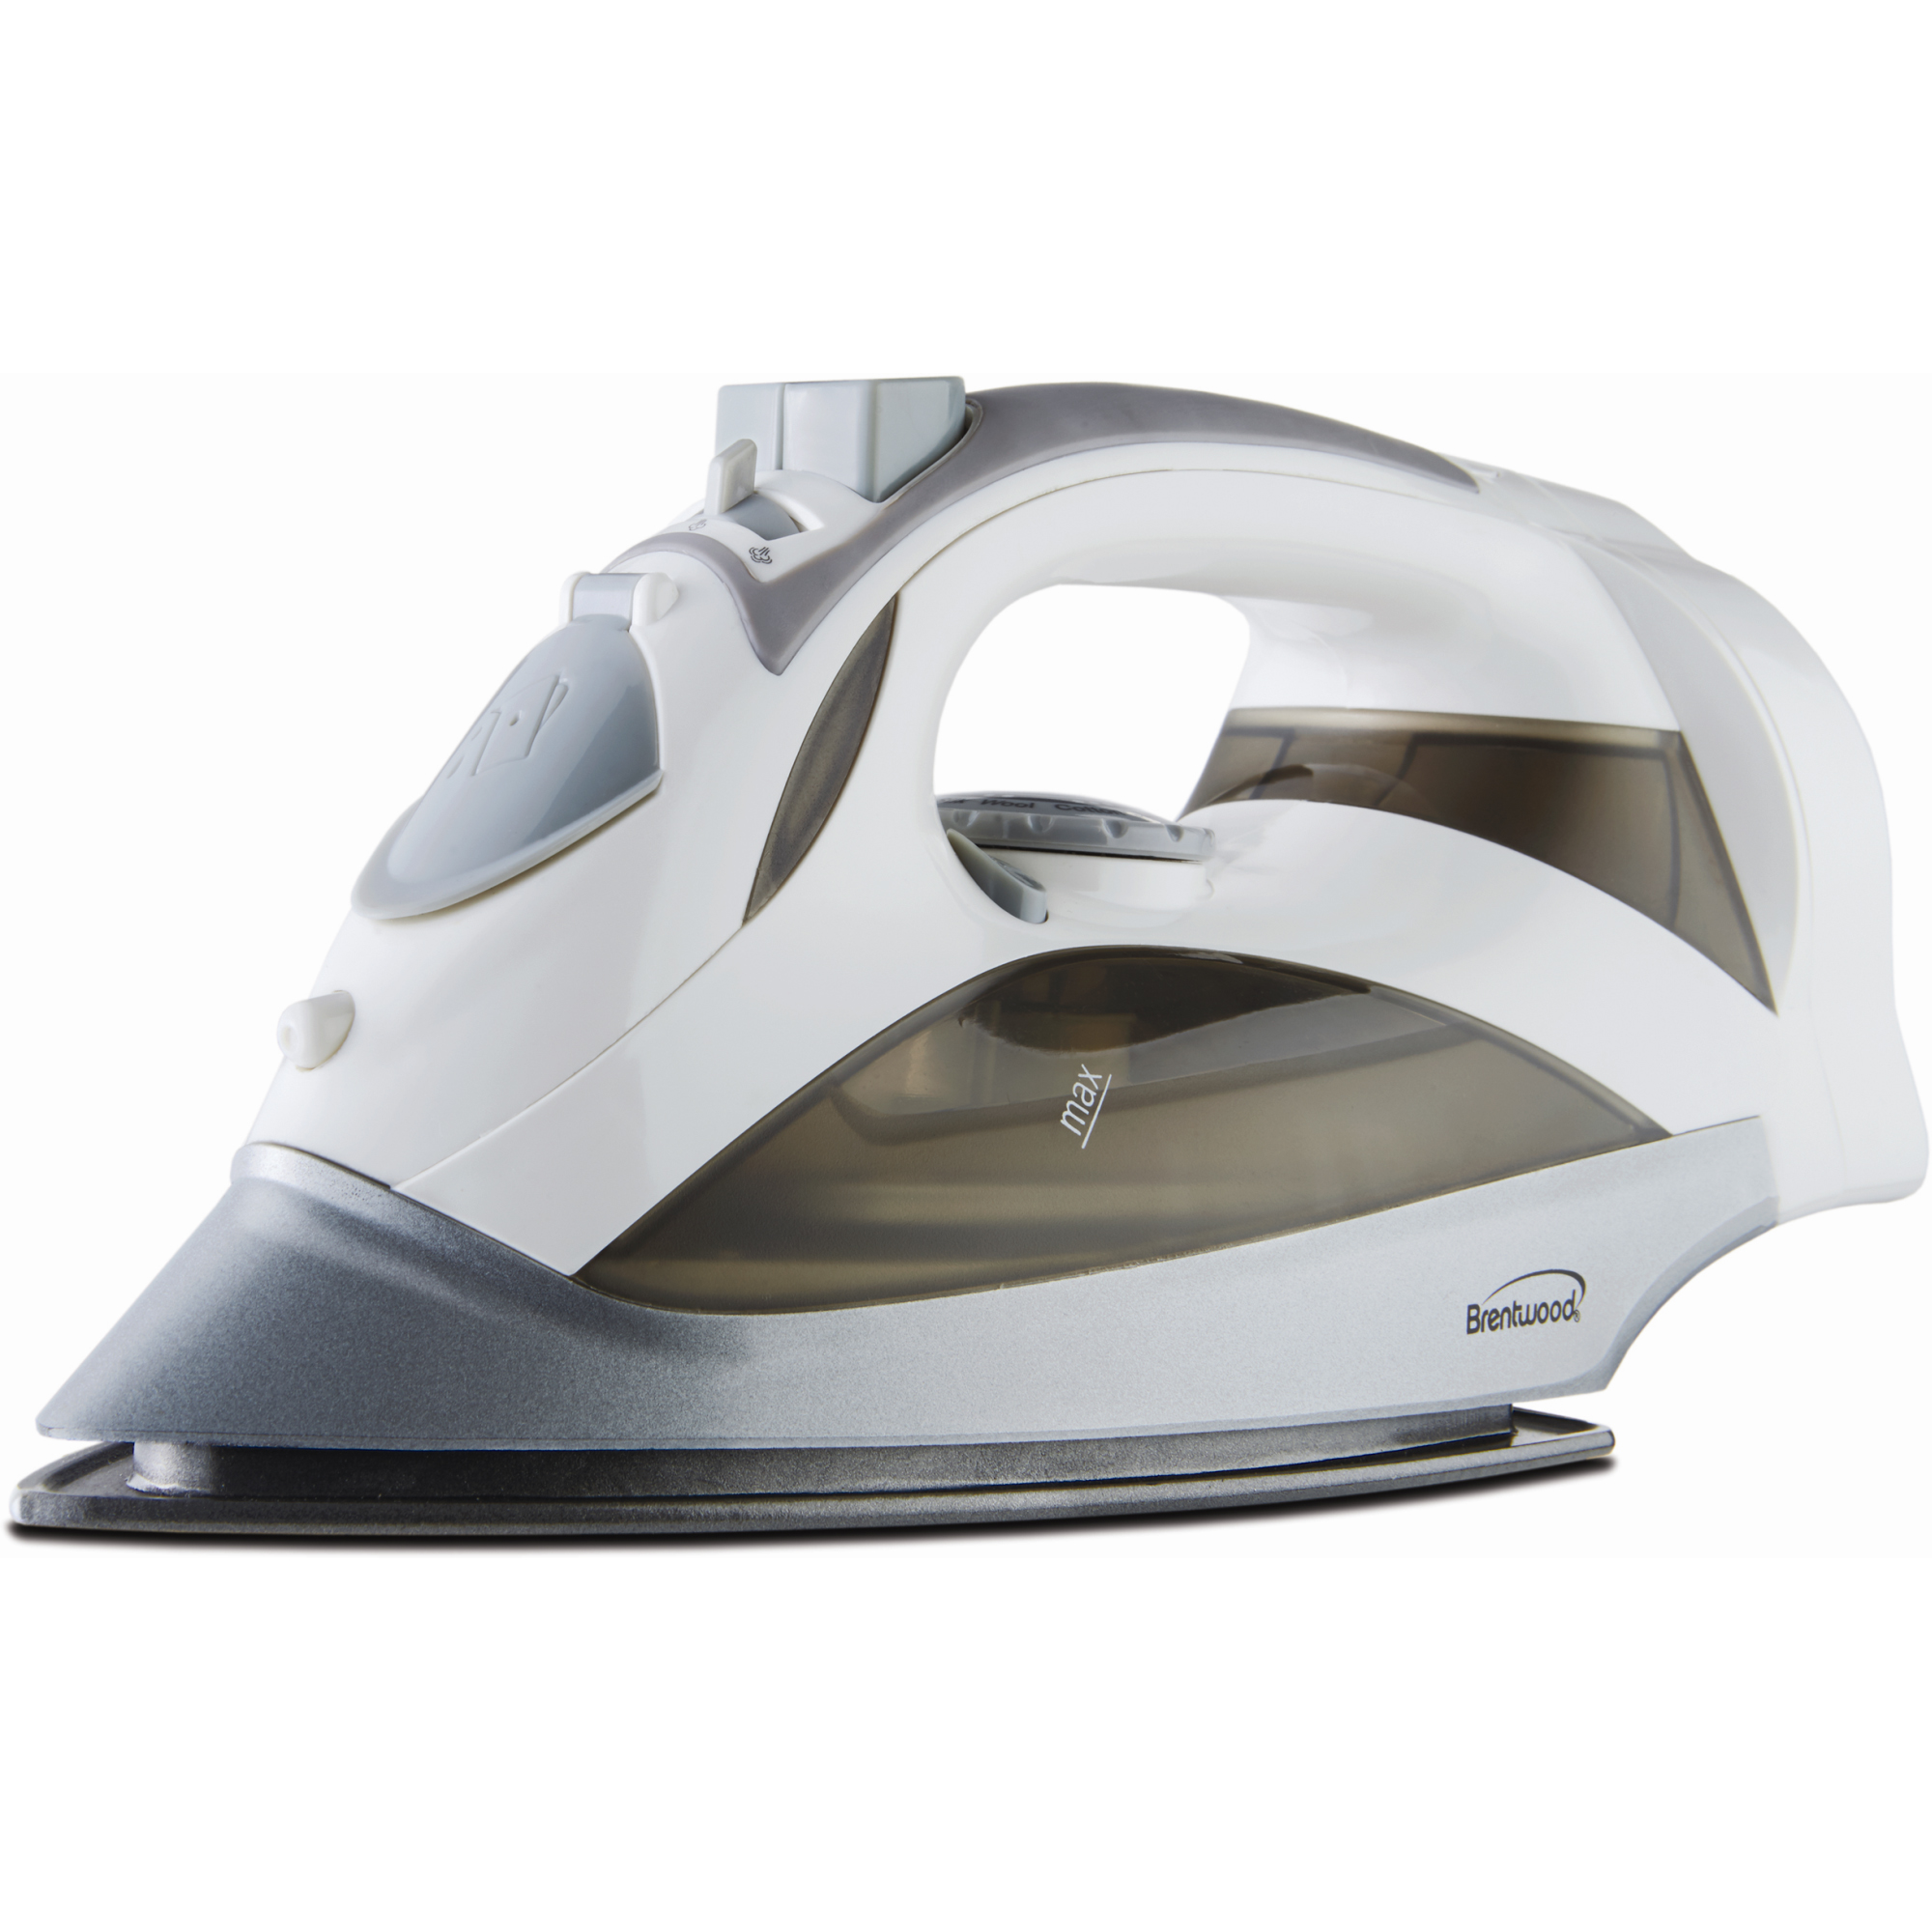 Brentwood [mpi-59w] Steam Iron With Retractable Cord [white] - 1200 W - White (mpi59w)